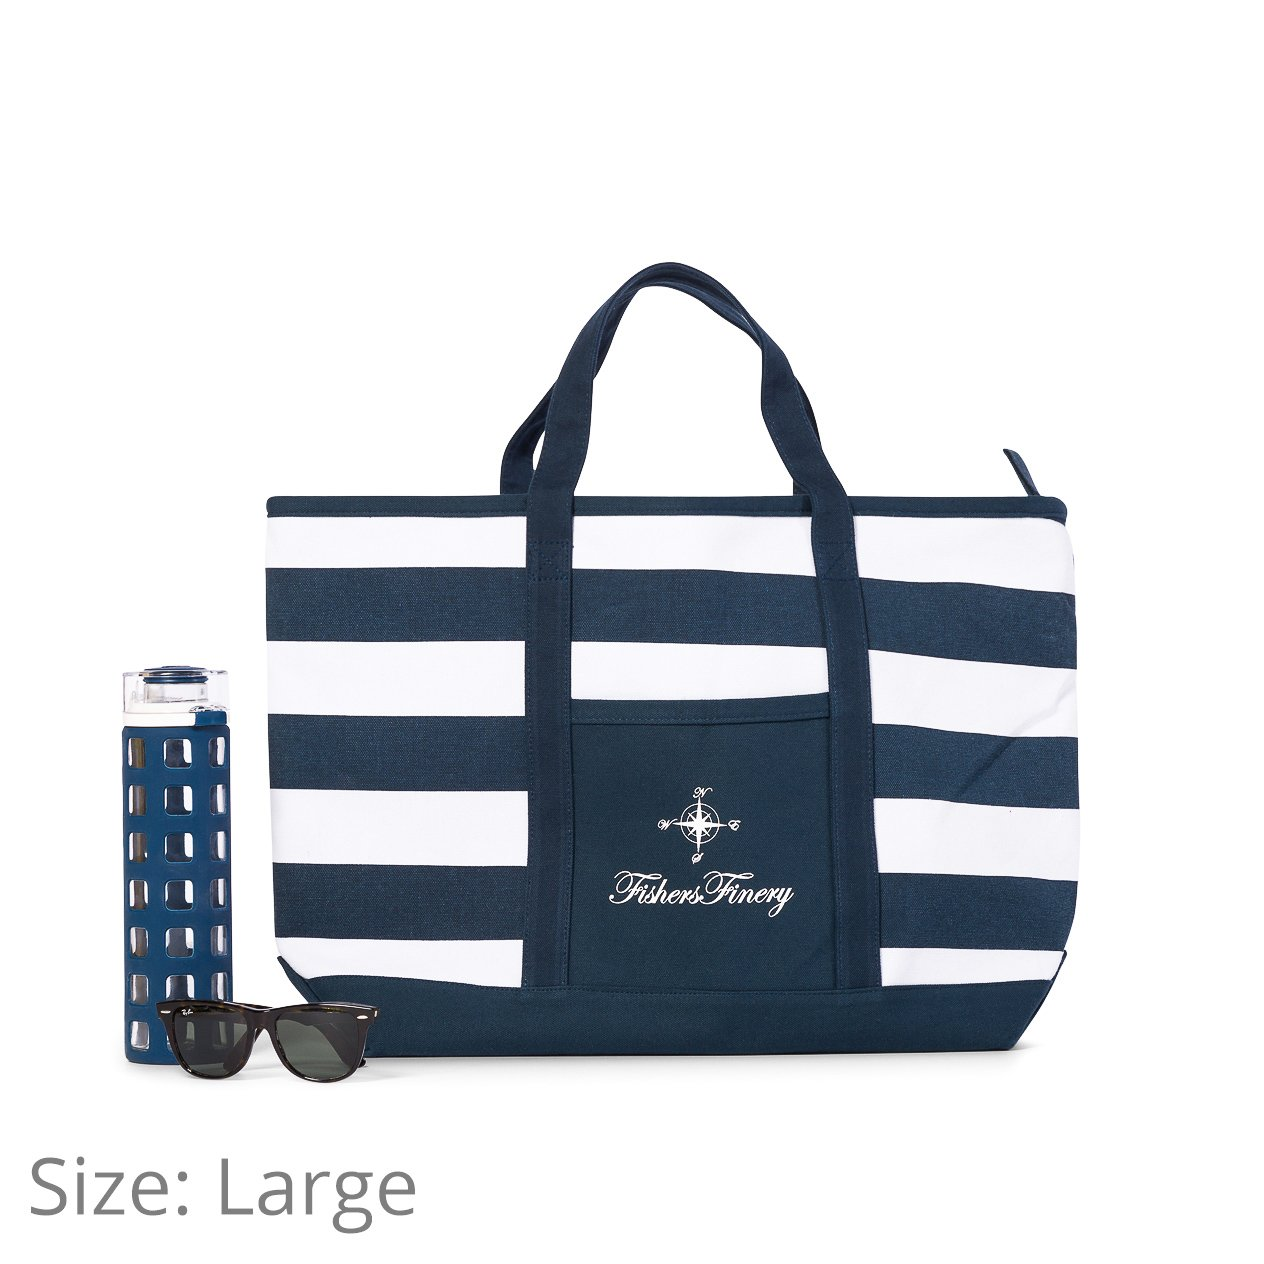 Fishers Finery Canvas Tote with Zipper and Lining with interior Pockets; Multi Sizes and Colors (Navy, S) by Fishers Finery (Image #8)